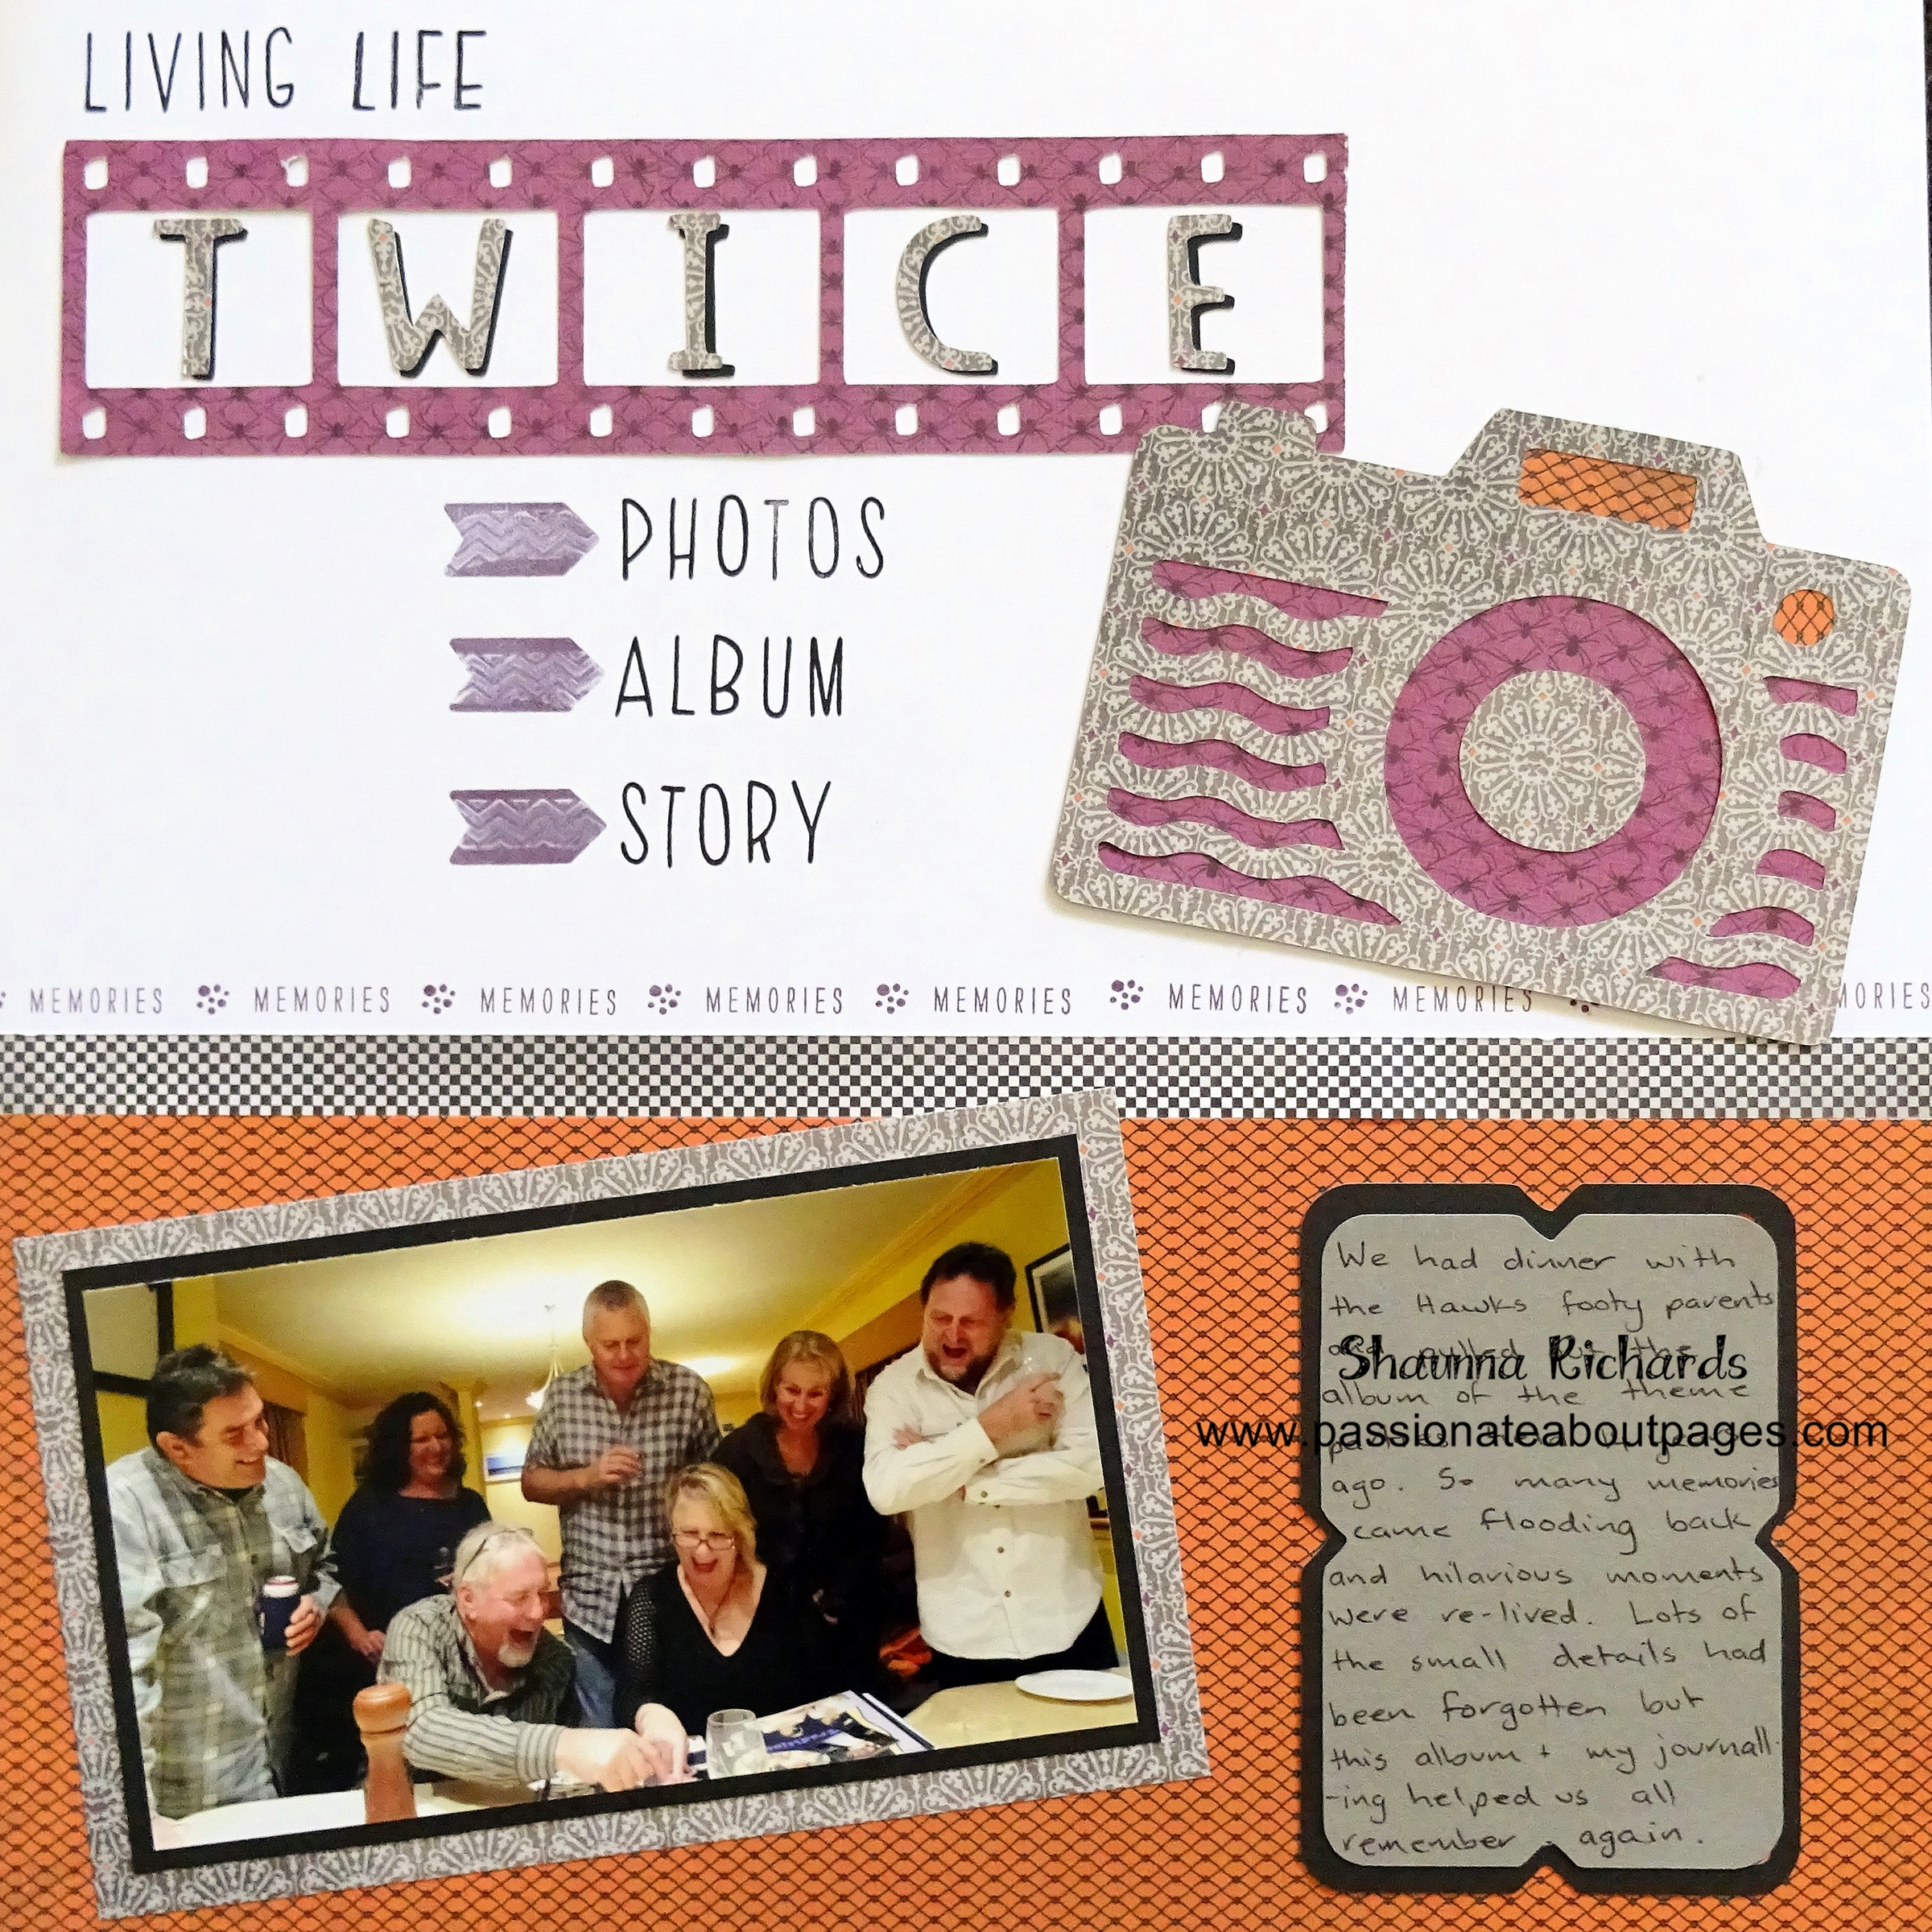 Celebrating the fact photo albums allow us to 'Live life twice'. #ctmhnevermore #ctmhartistry